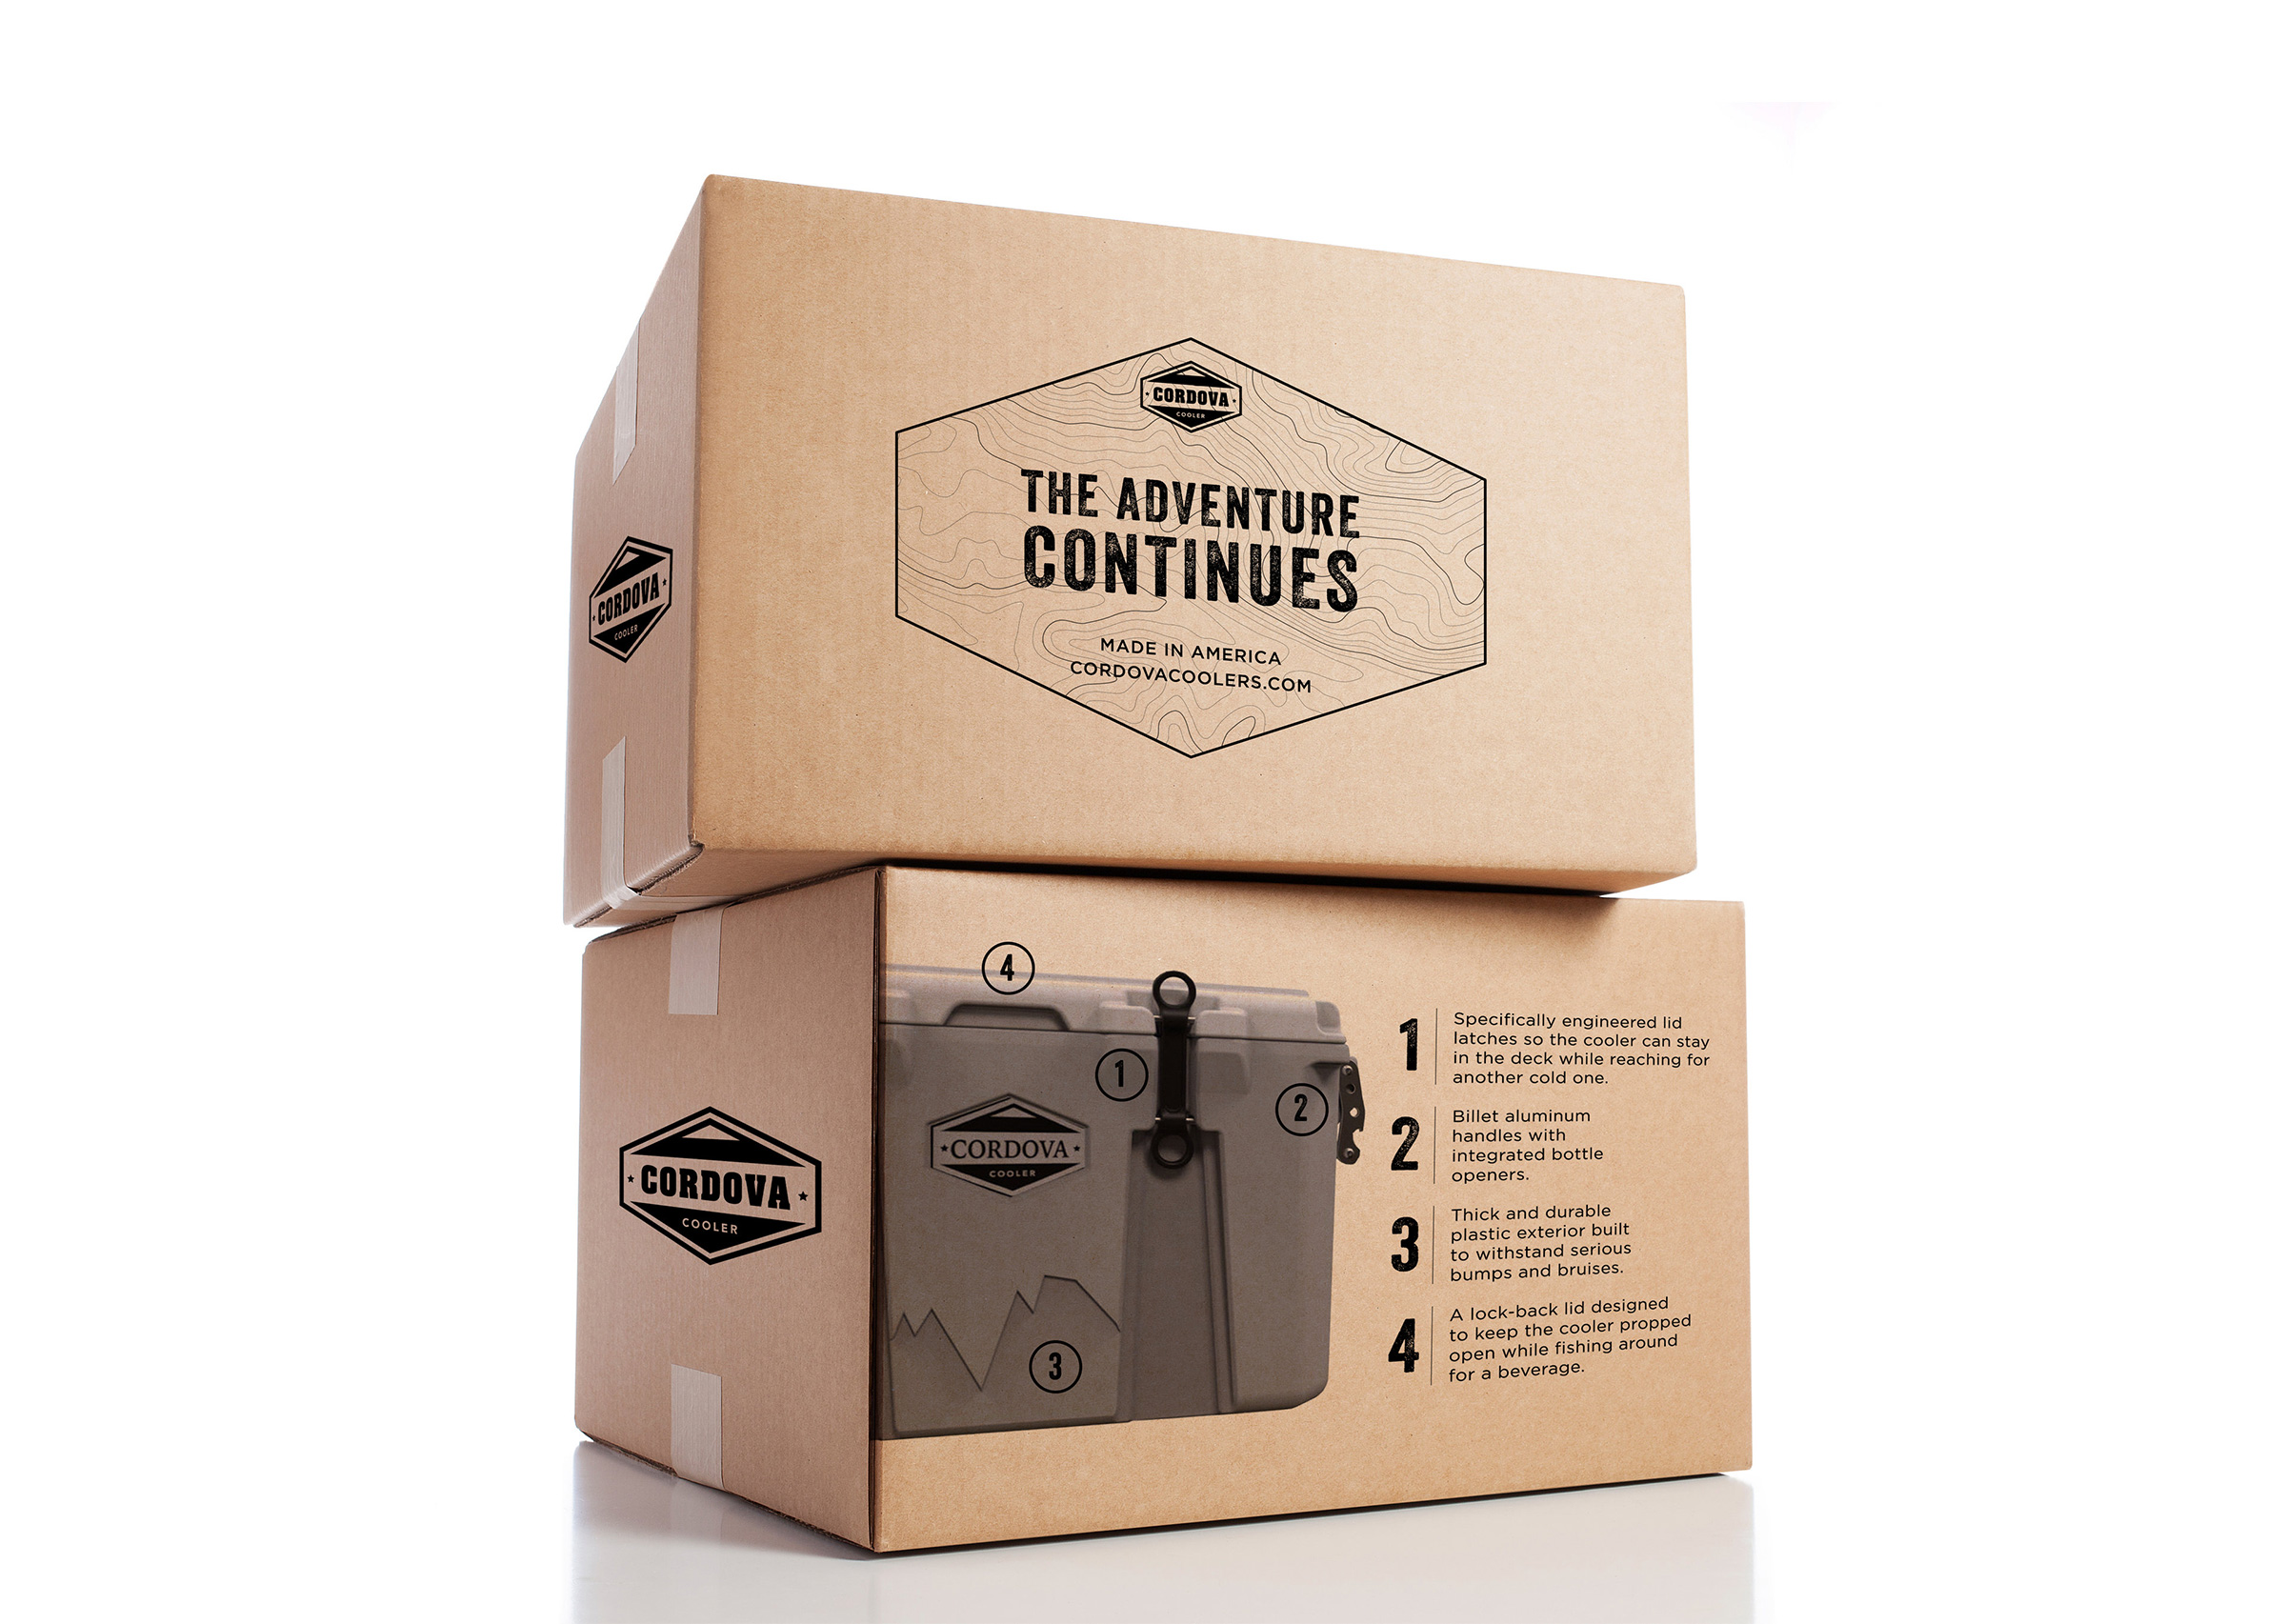 Packaging box design by Sonora Leigh Creative Studio